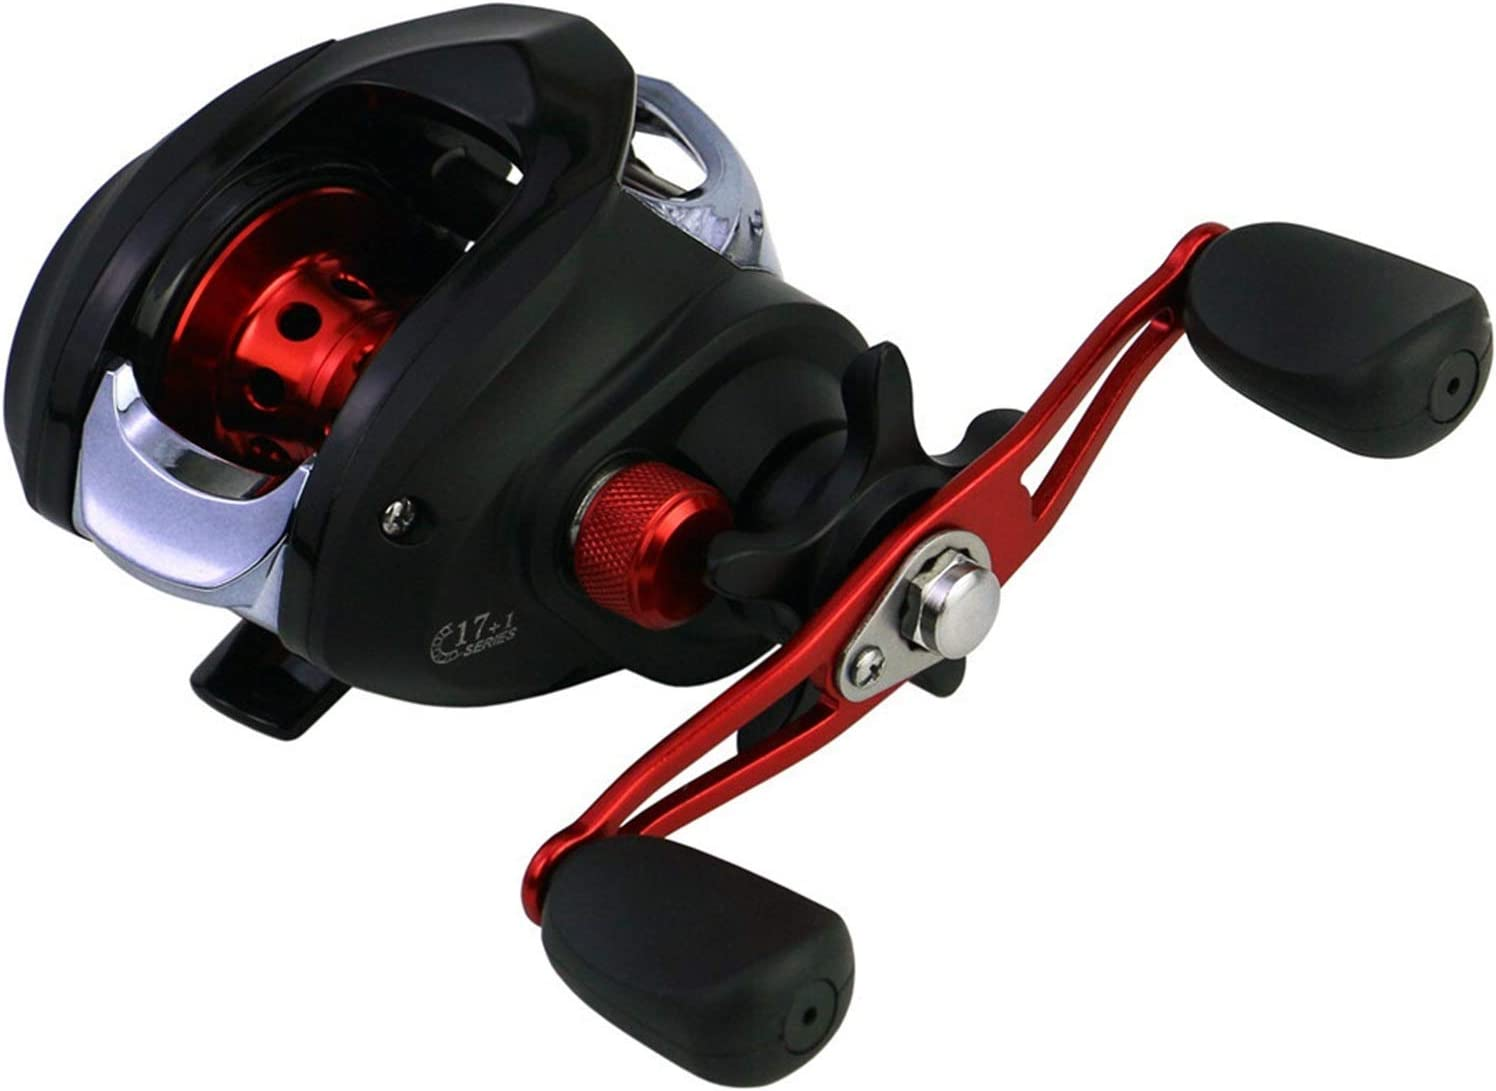 Excellence Free shipping on posting reviews L-SHISM Fishing Reels Reel Super Cast Casting Light Bait